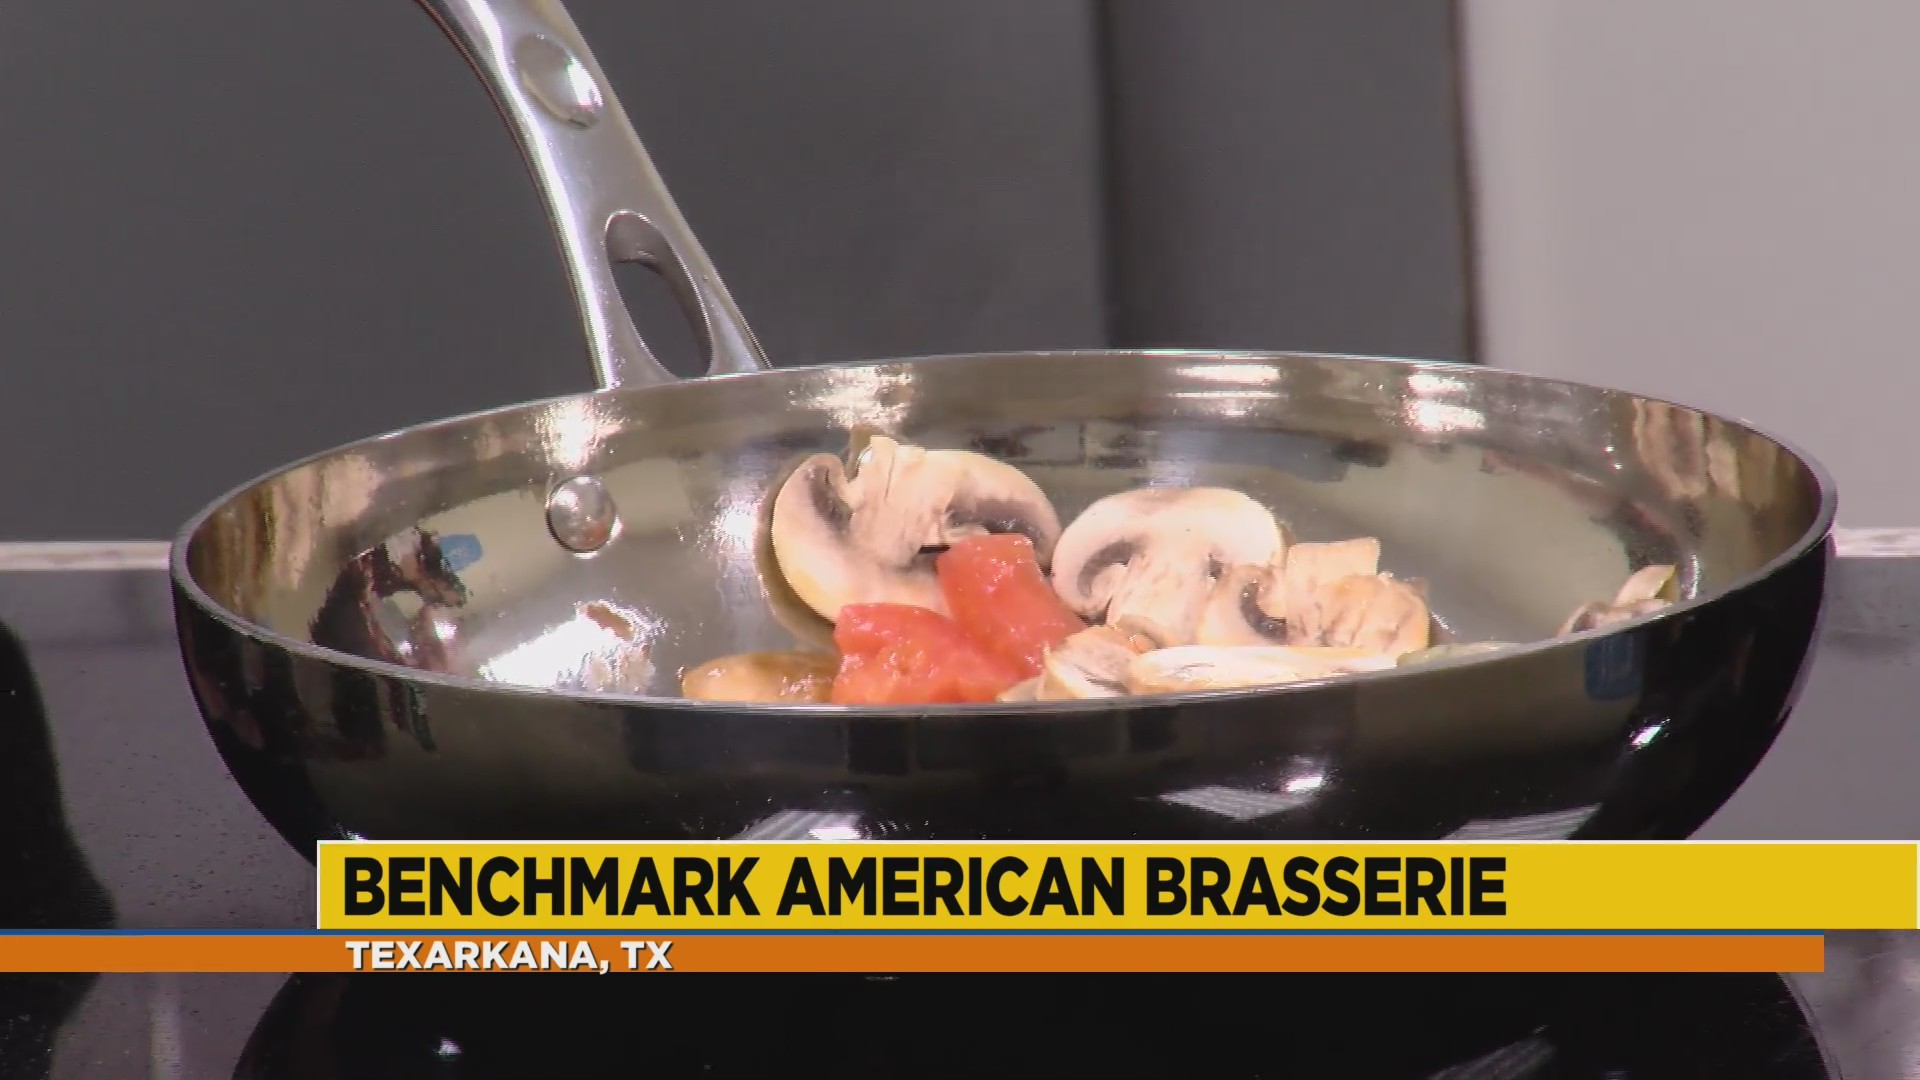 In the Kitchen with Benchmark American Brasserie